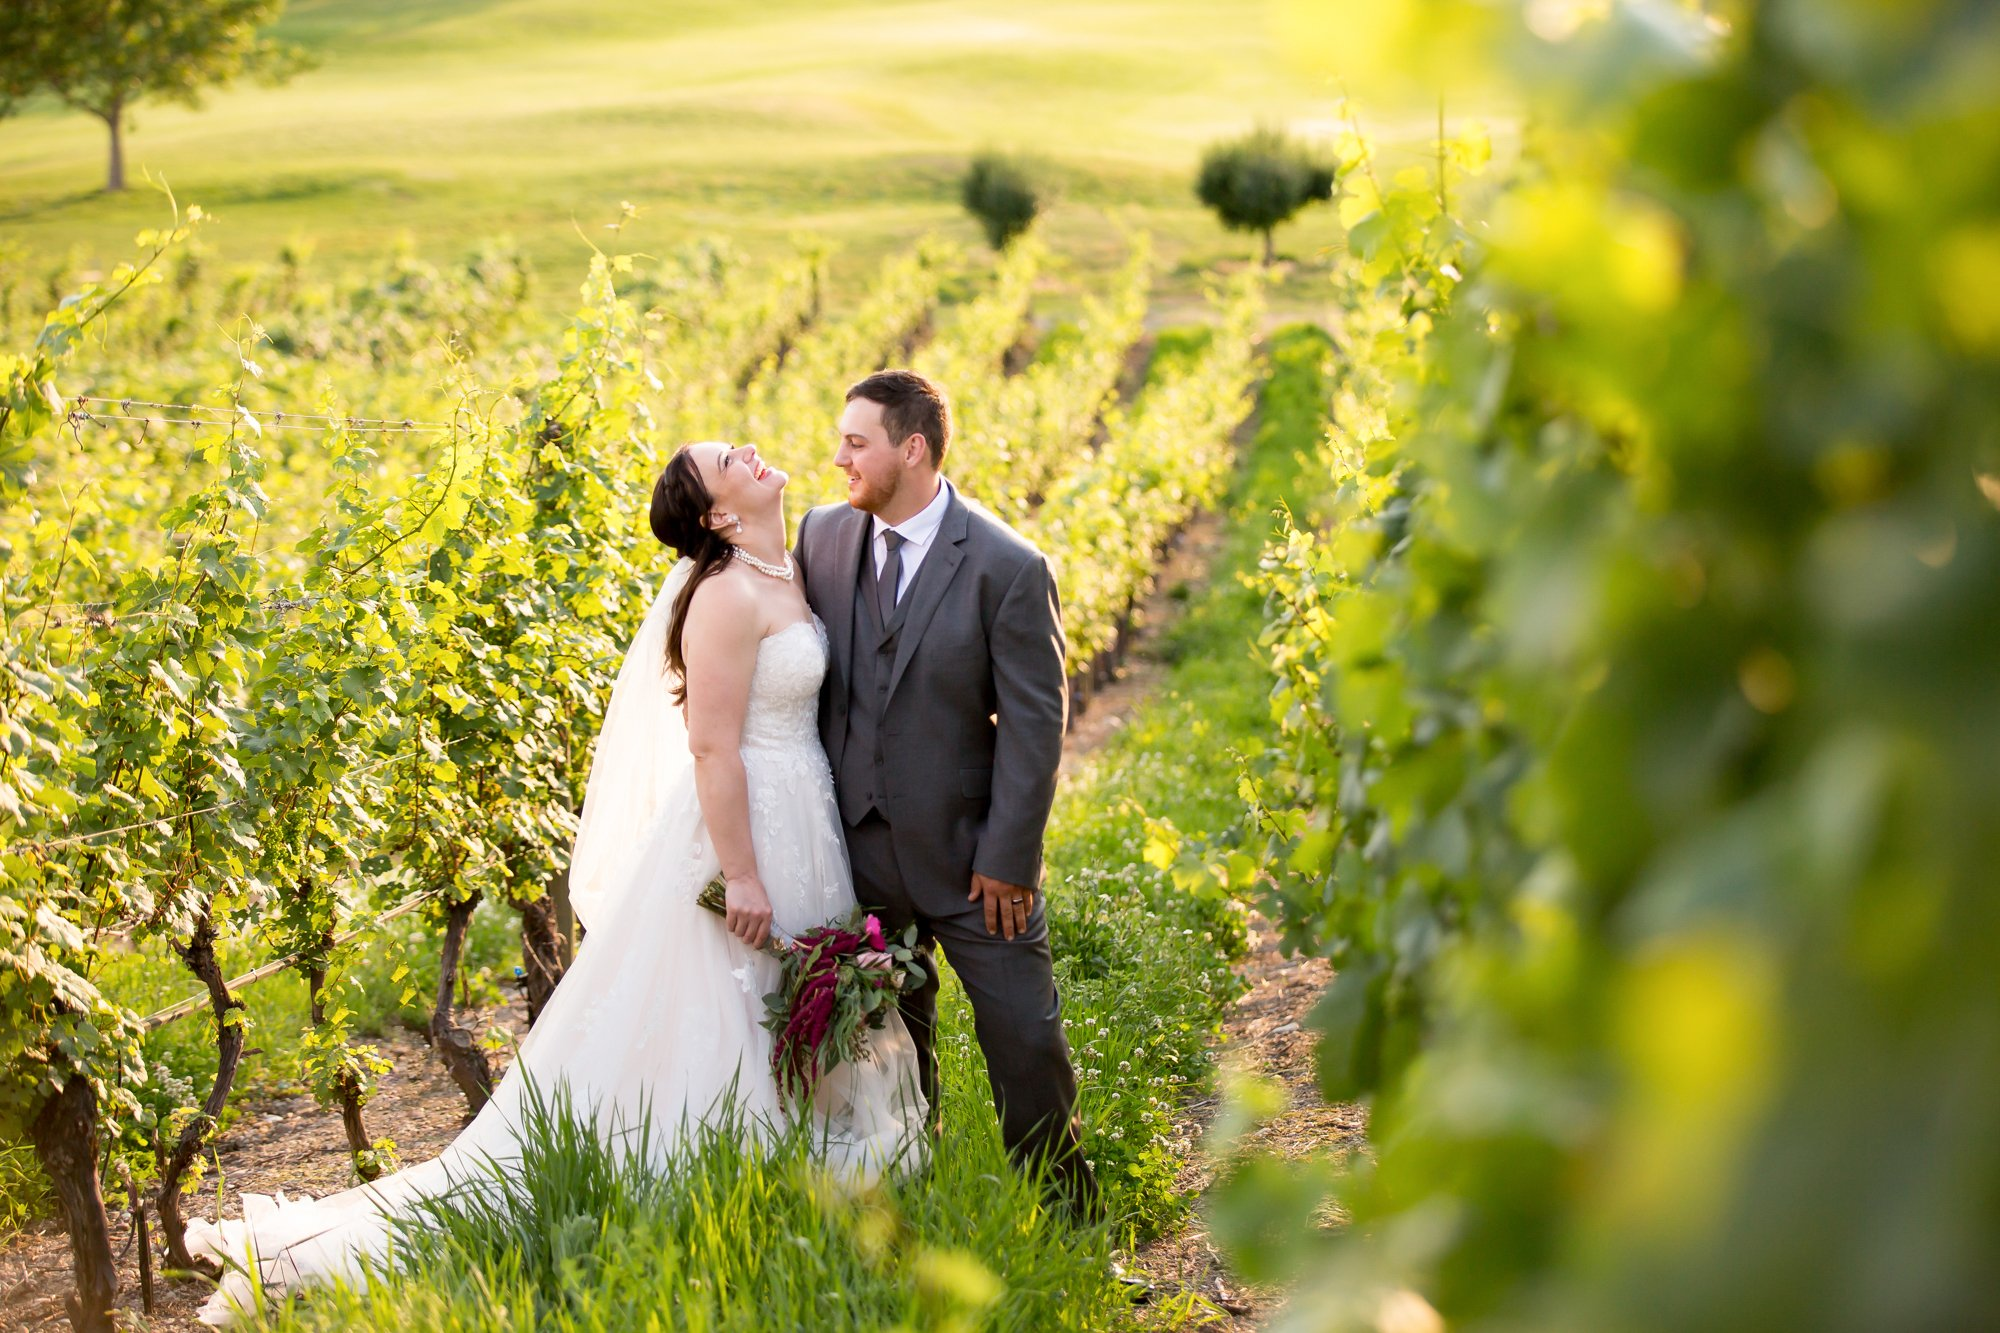 A couple laughing together in a vineyard